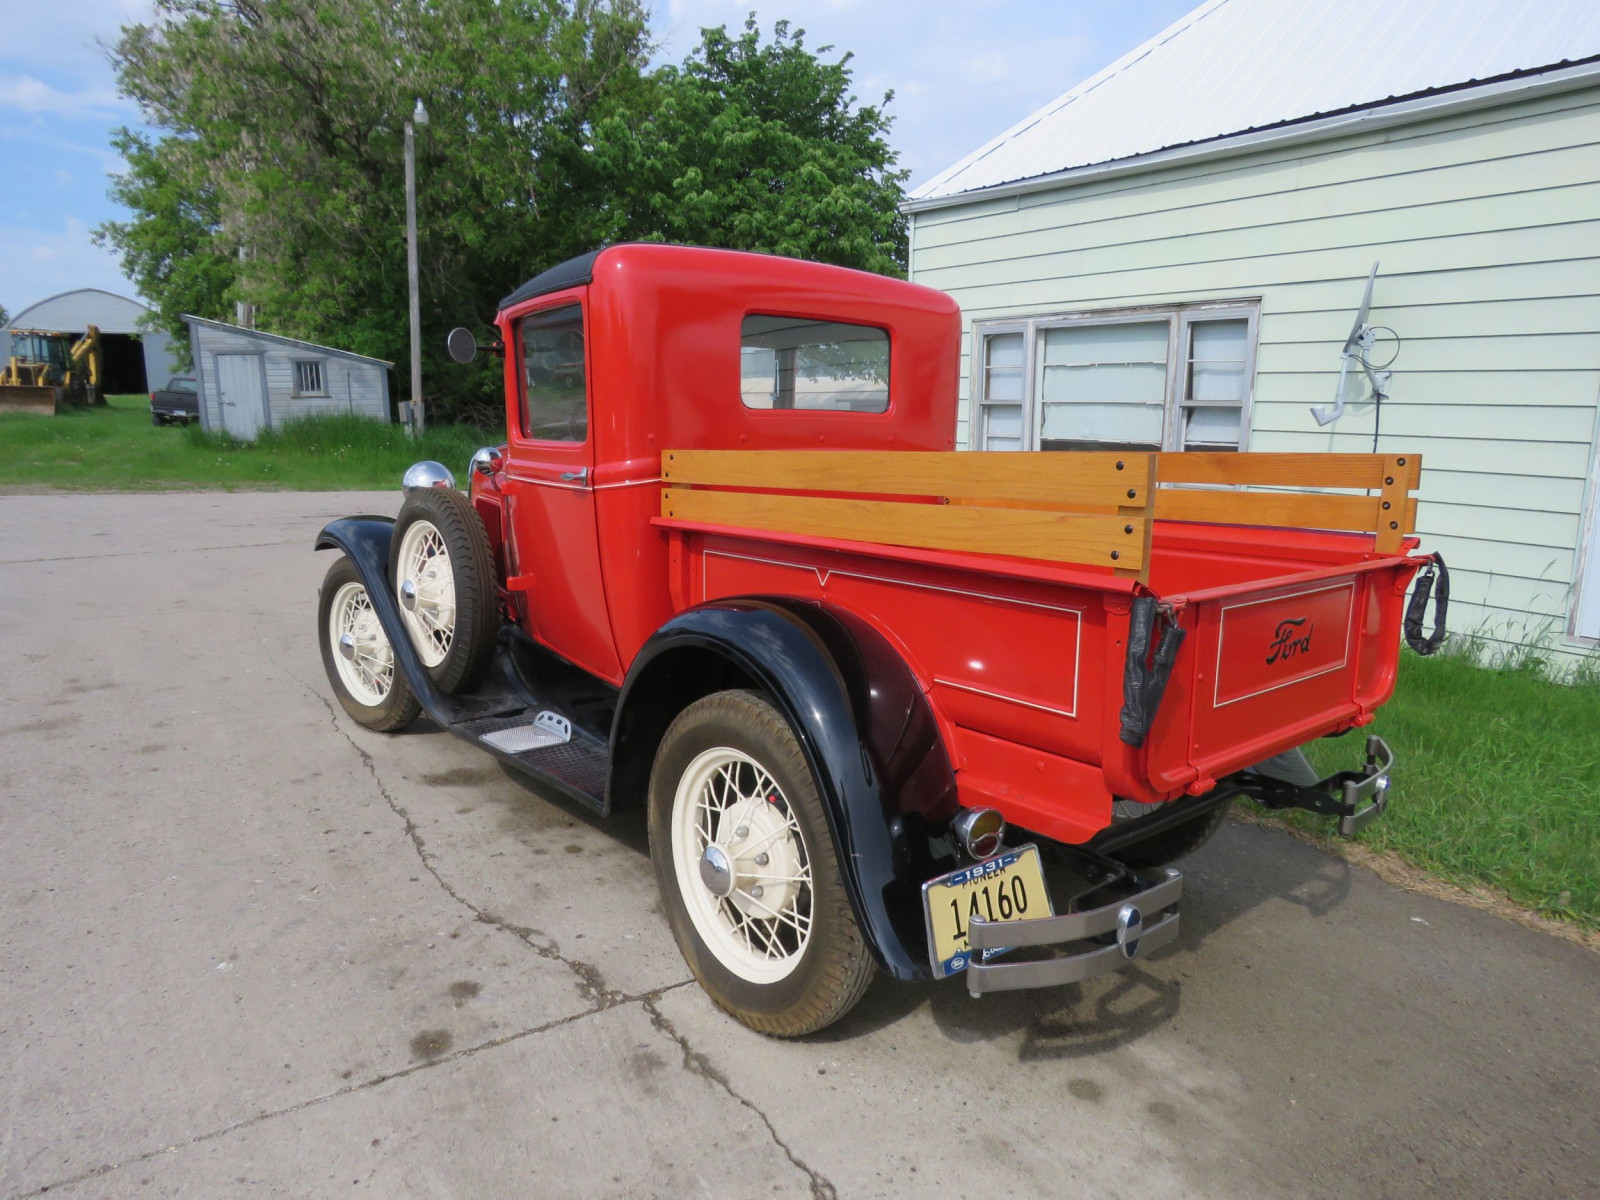 1931 Ford Model A Pickup - Image 7